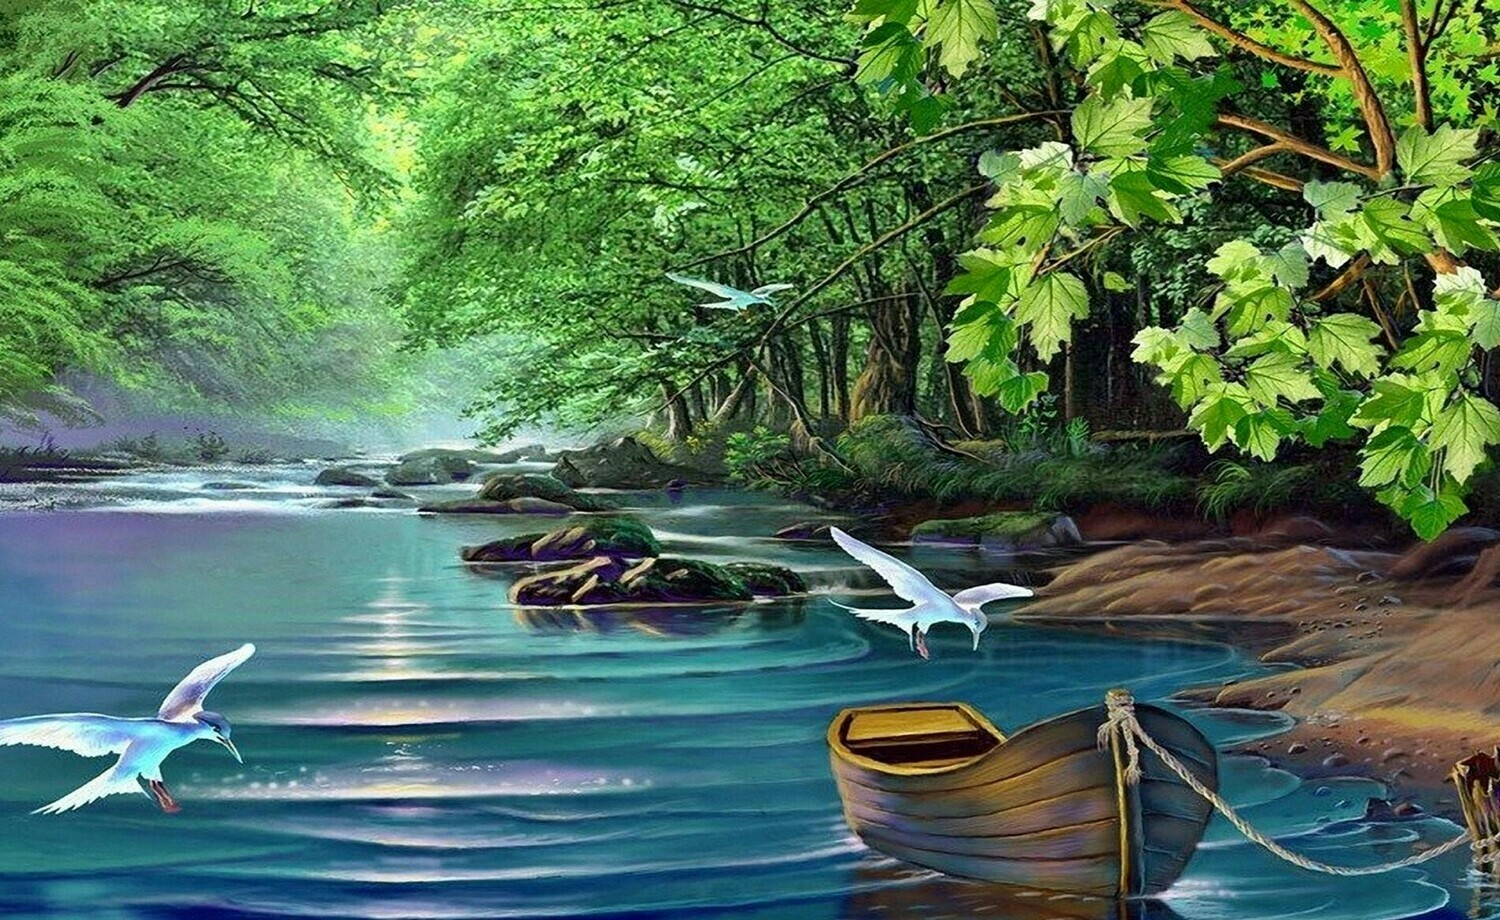 Scenery Artwork 07 - Full Drill Diamond Painting - Specially ordered for you. Delivery is approximately 4 - 6 weeks.